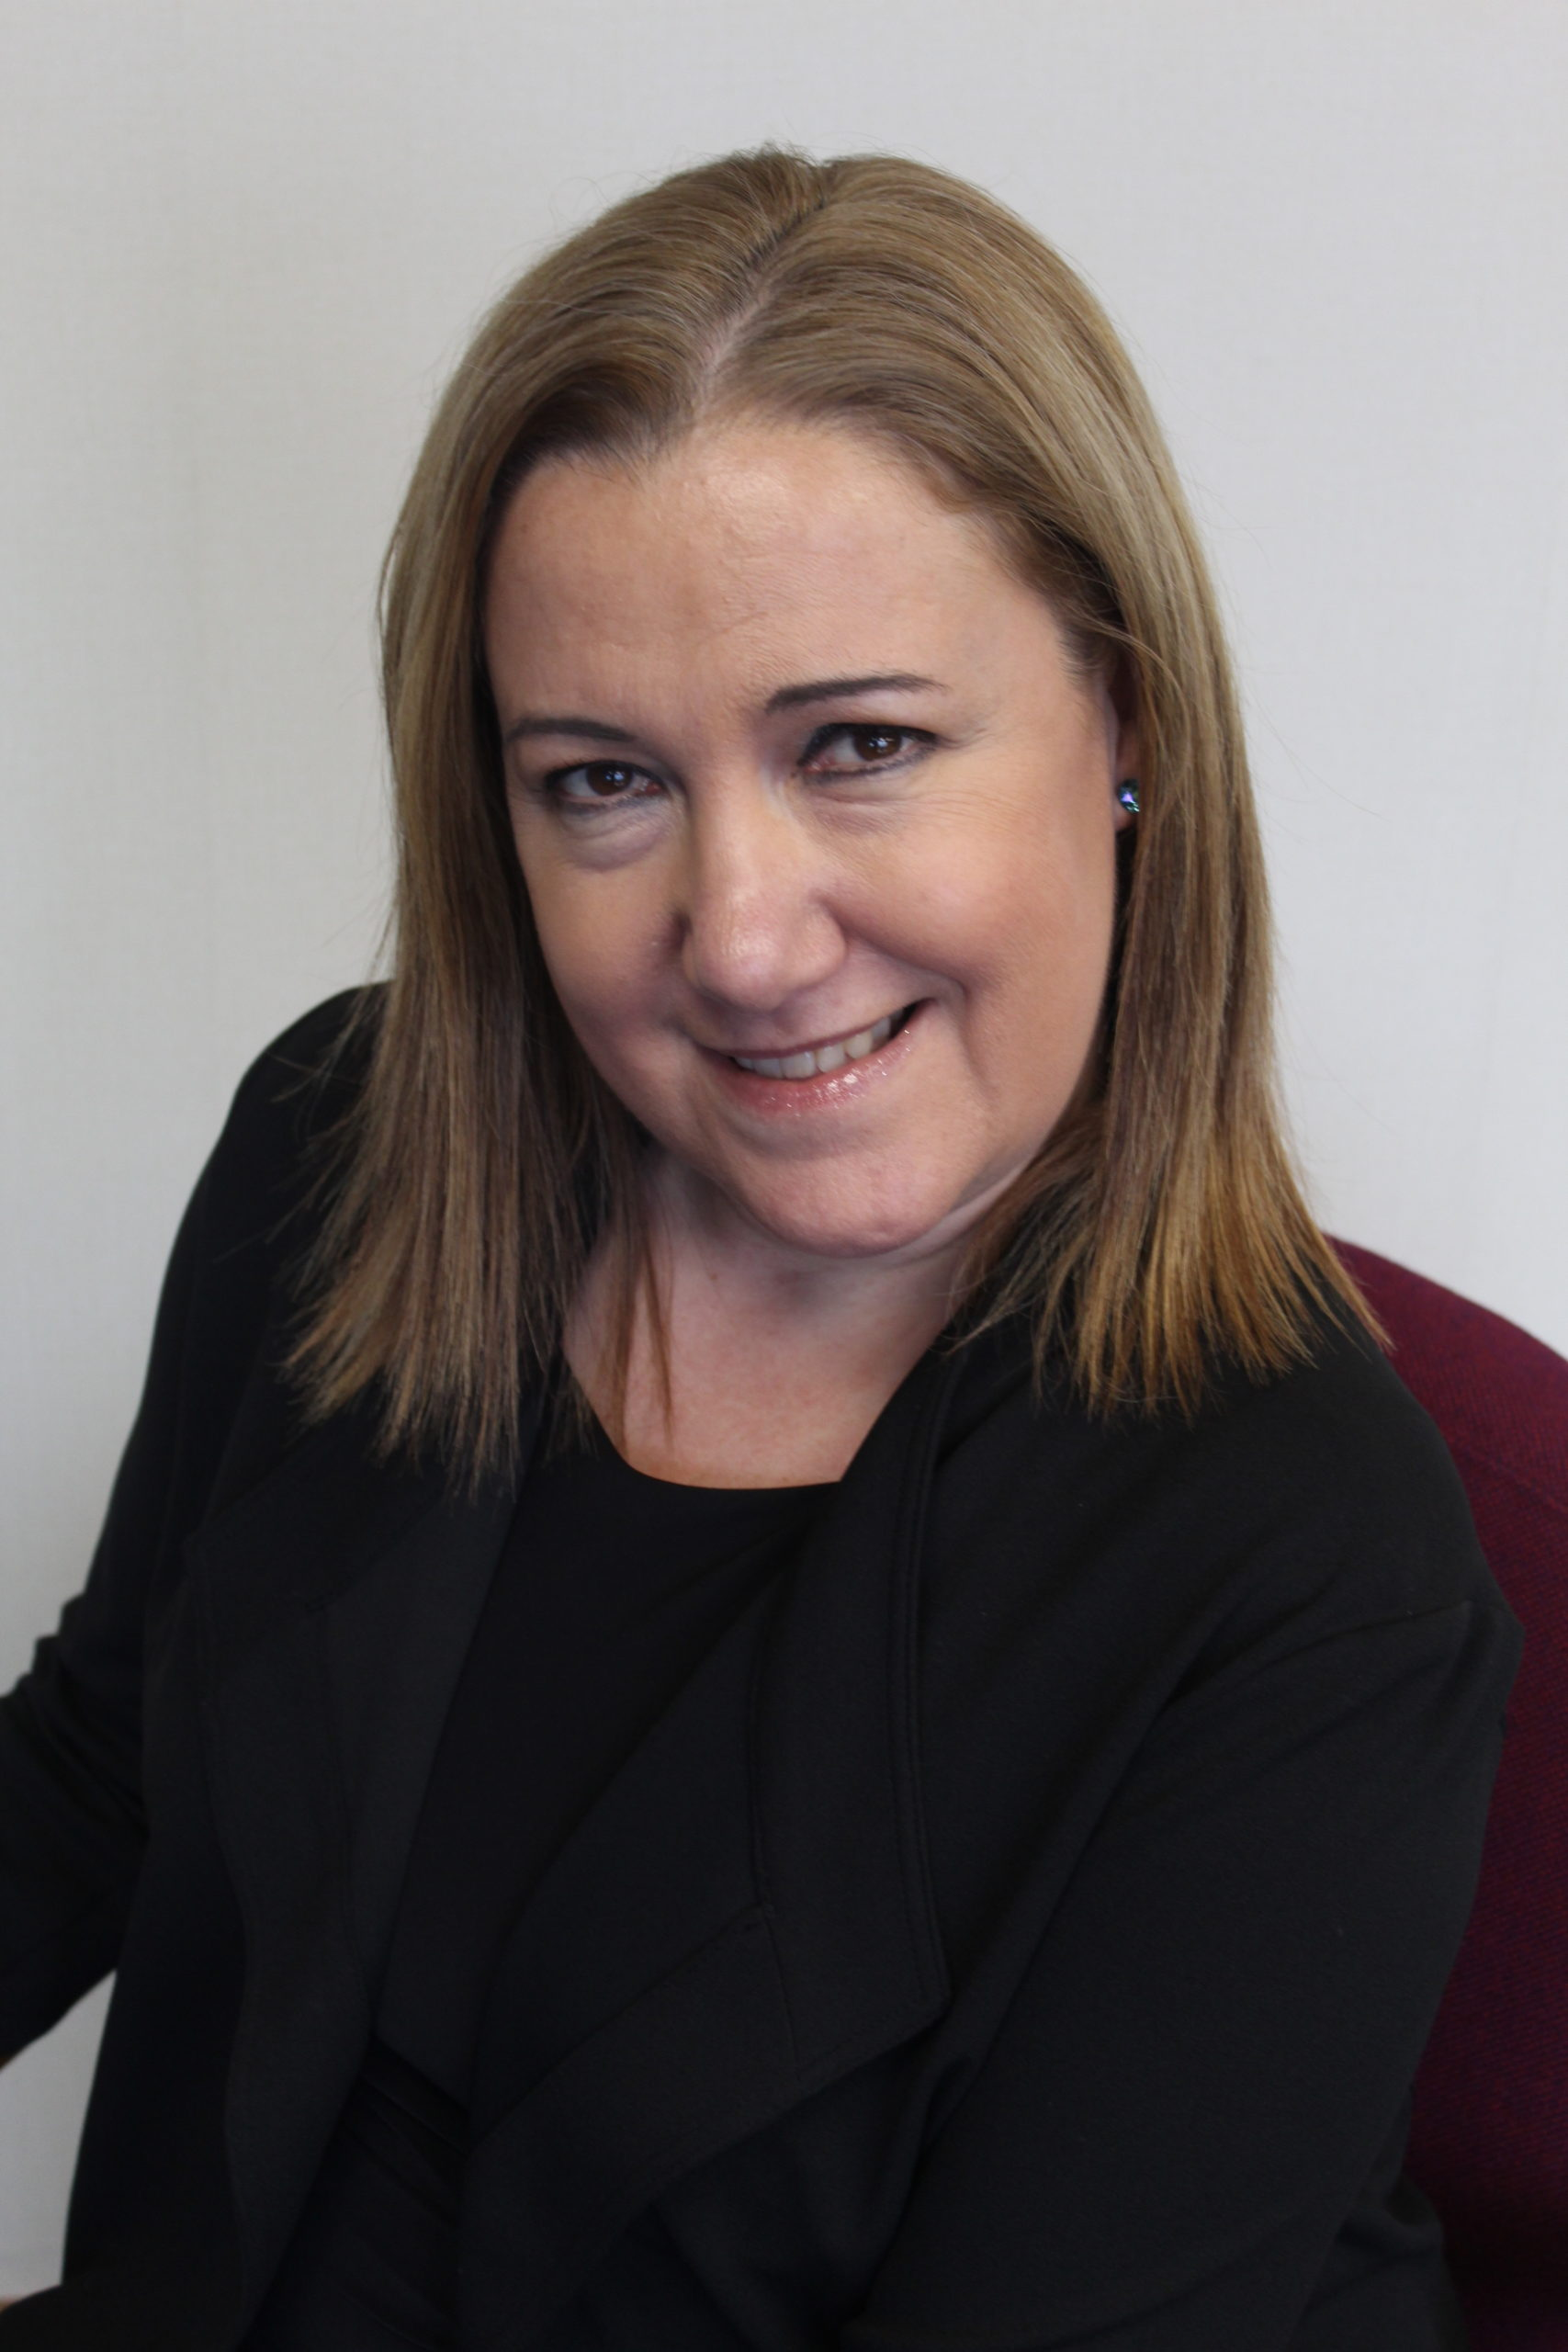 Sarah Johnson, Business services manager